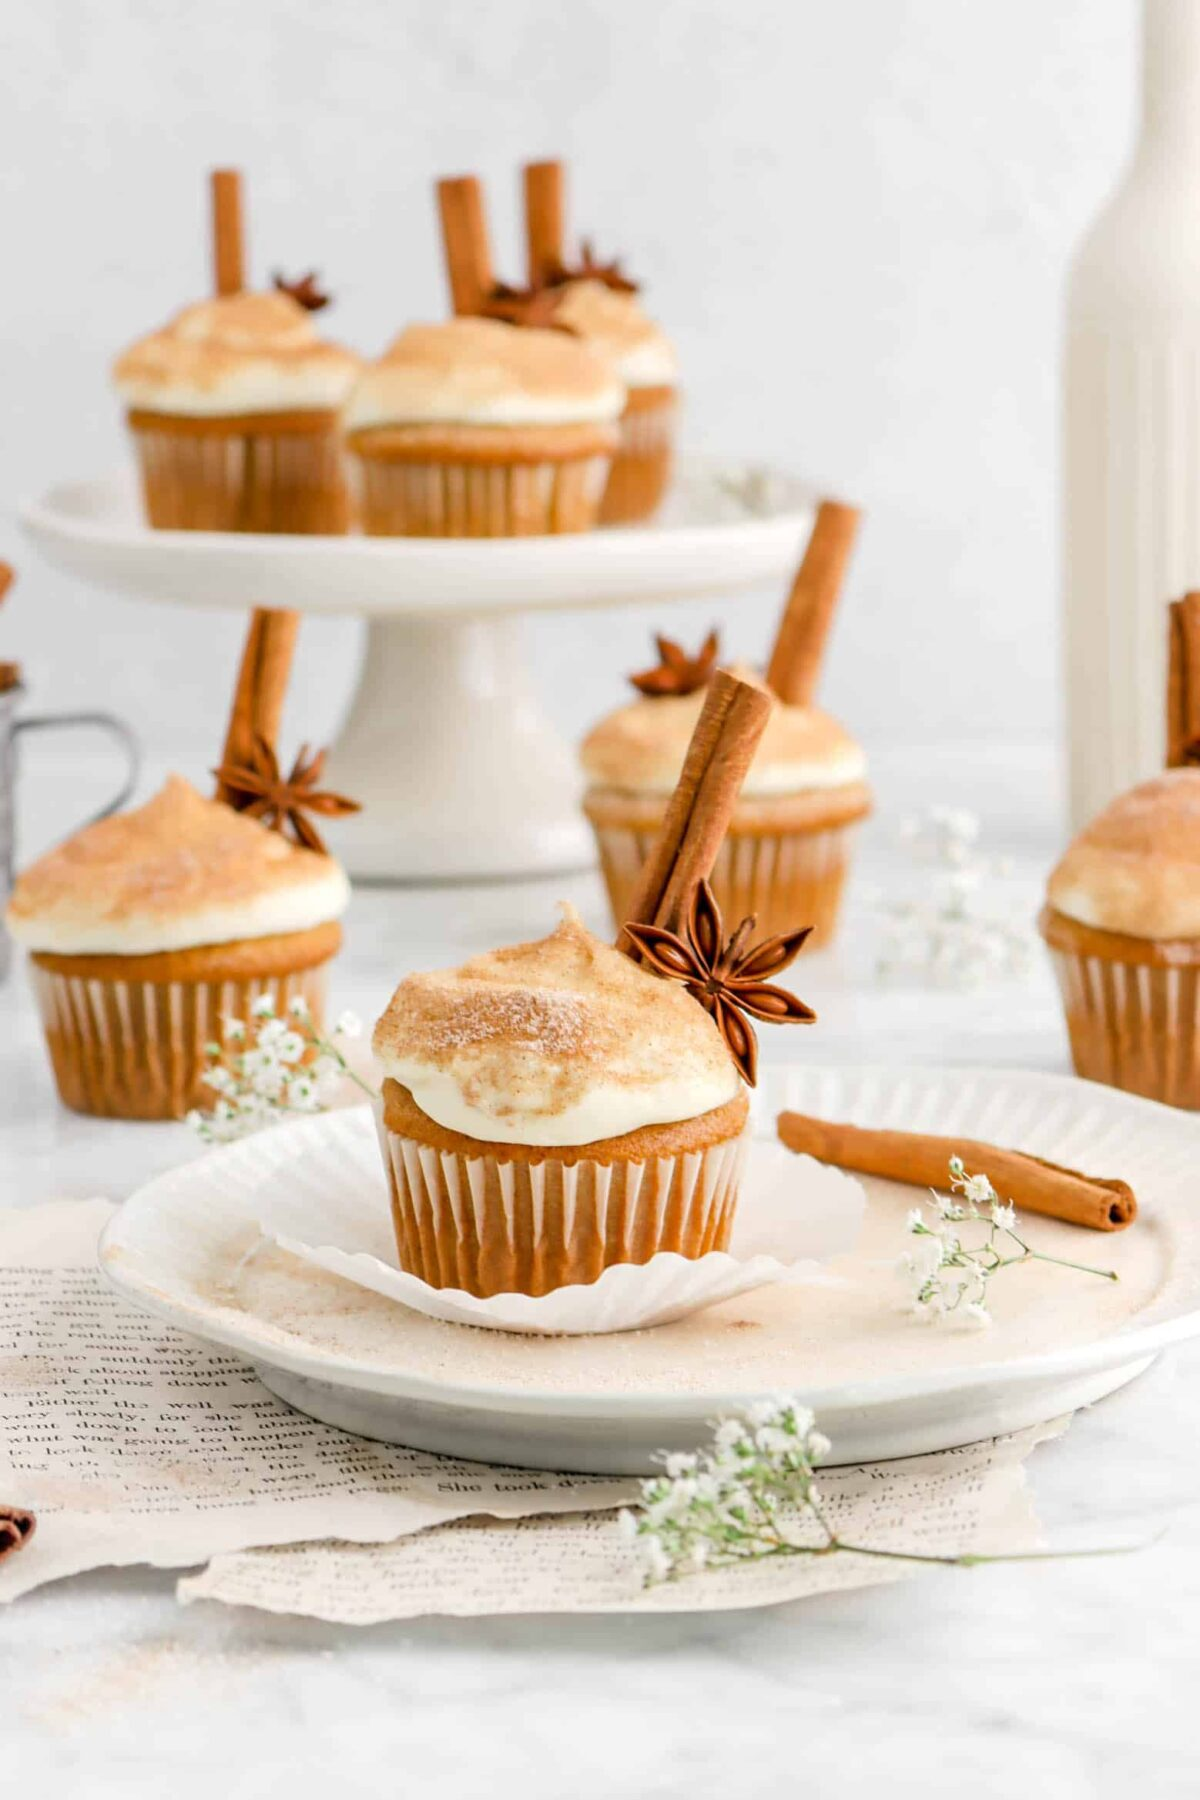 gluten free cupcake on plate with whole spices, flowers, and more cupcakes behind